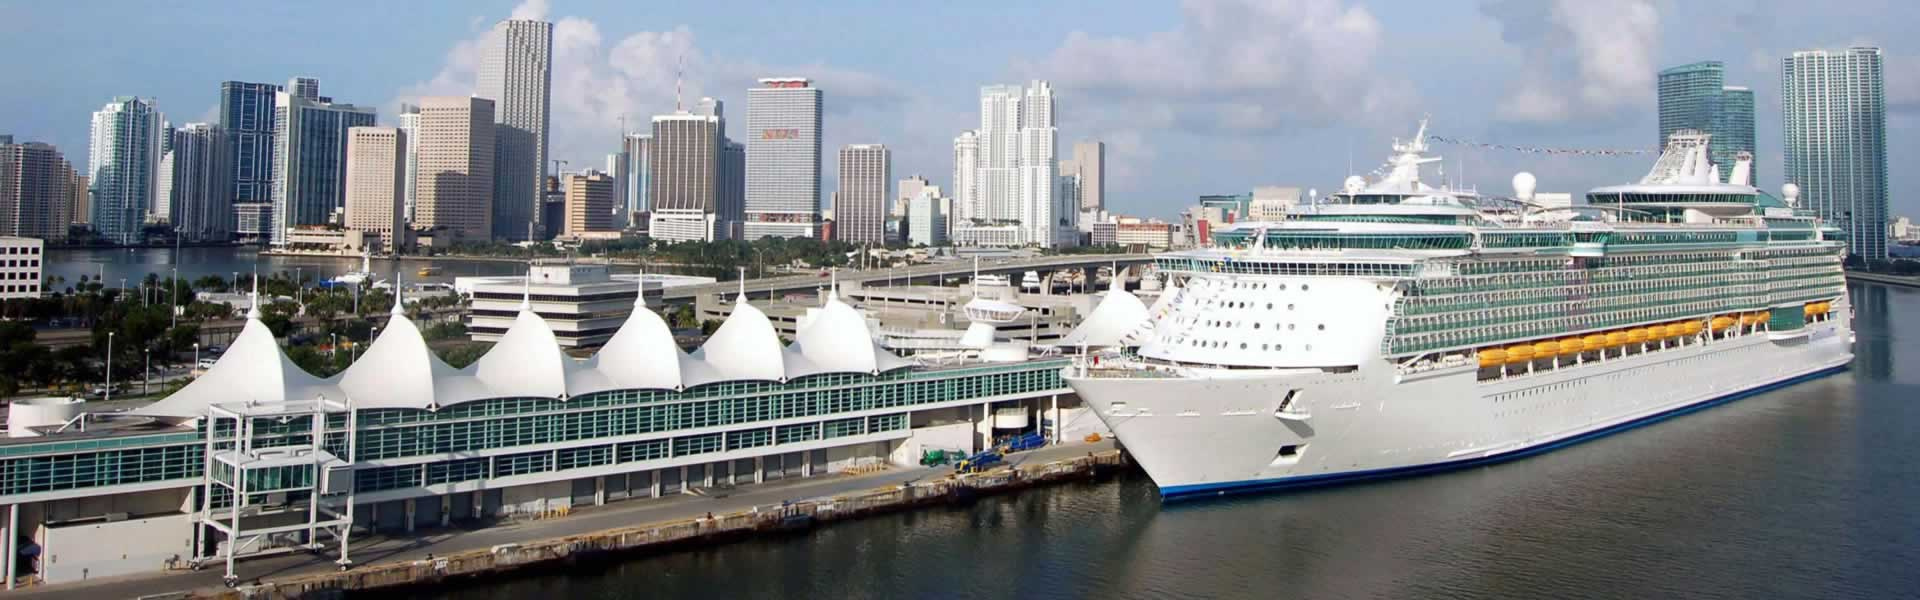 https://www.cruiseportmiami.com/wp-content/uploads/2016/01/Cruise-Ship-at-the-Port-of-Miami.jpg